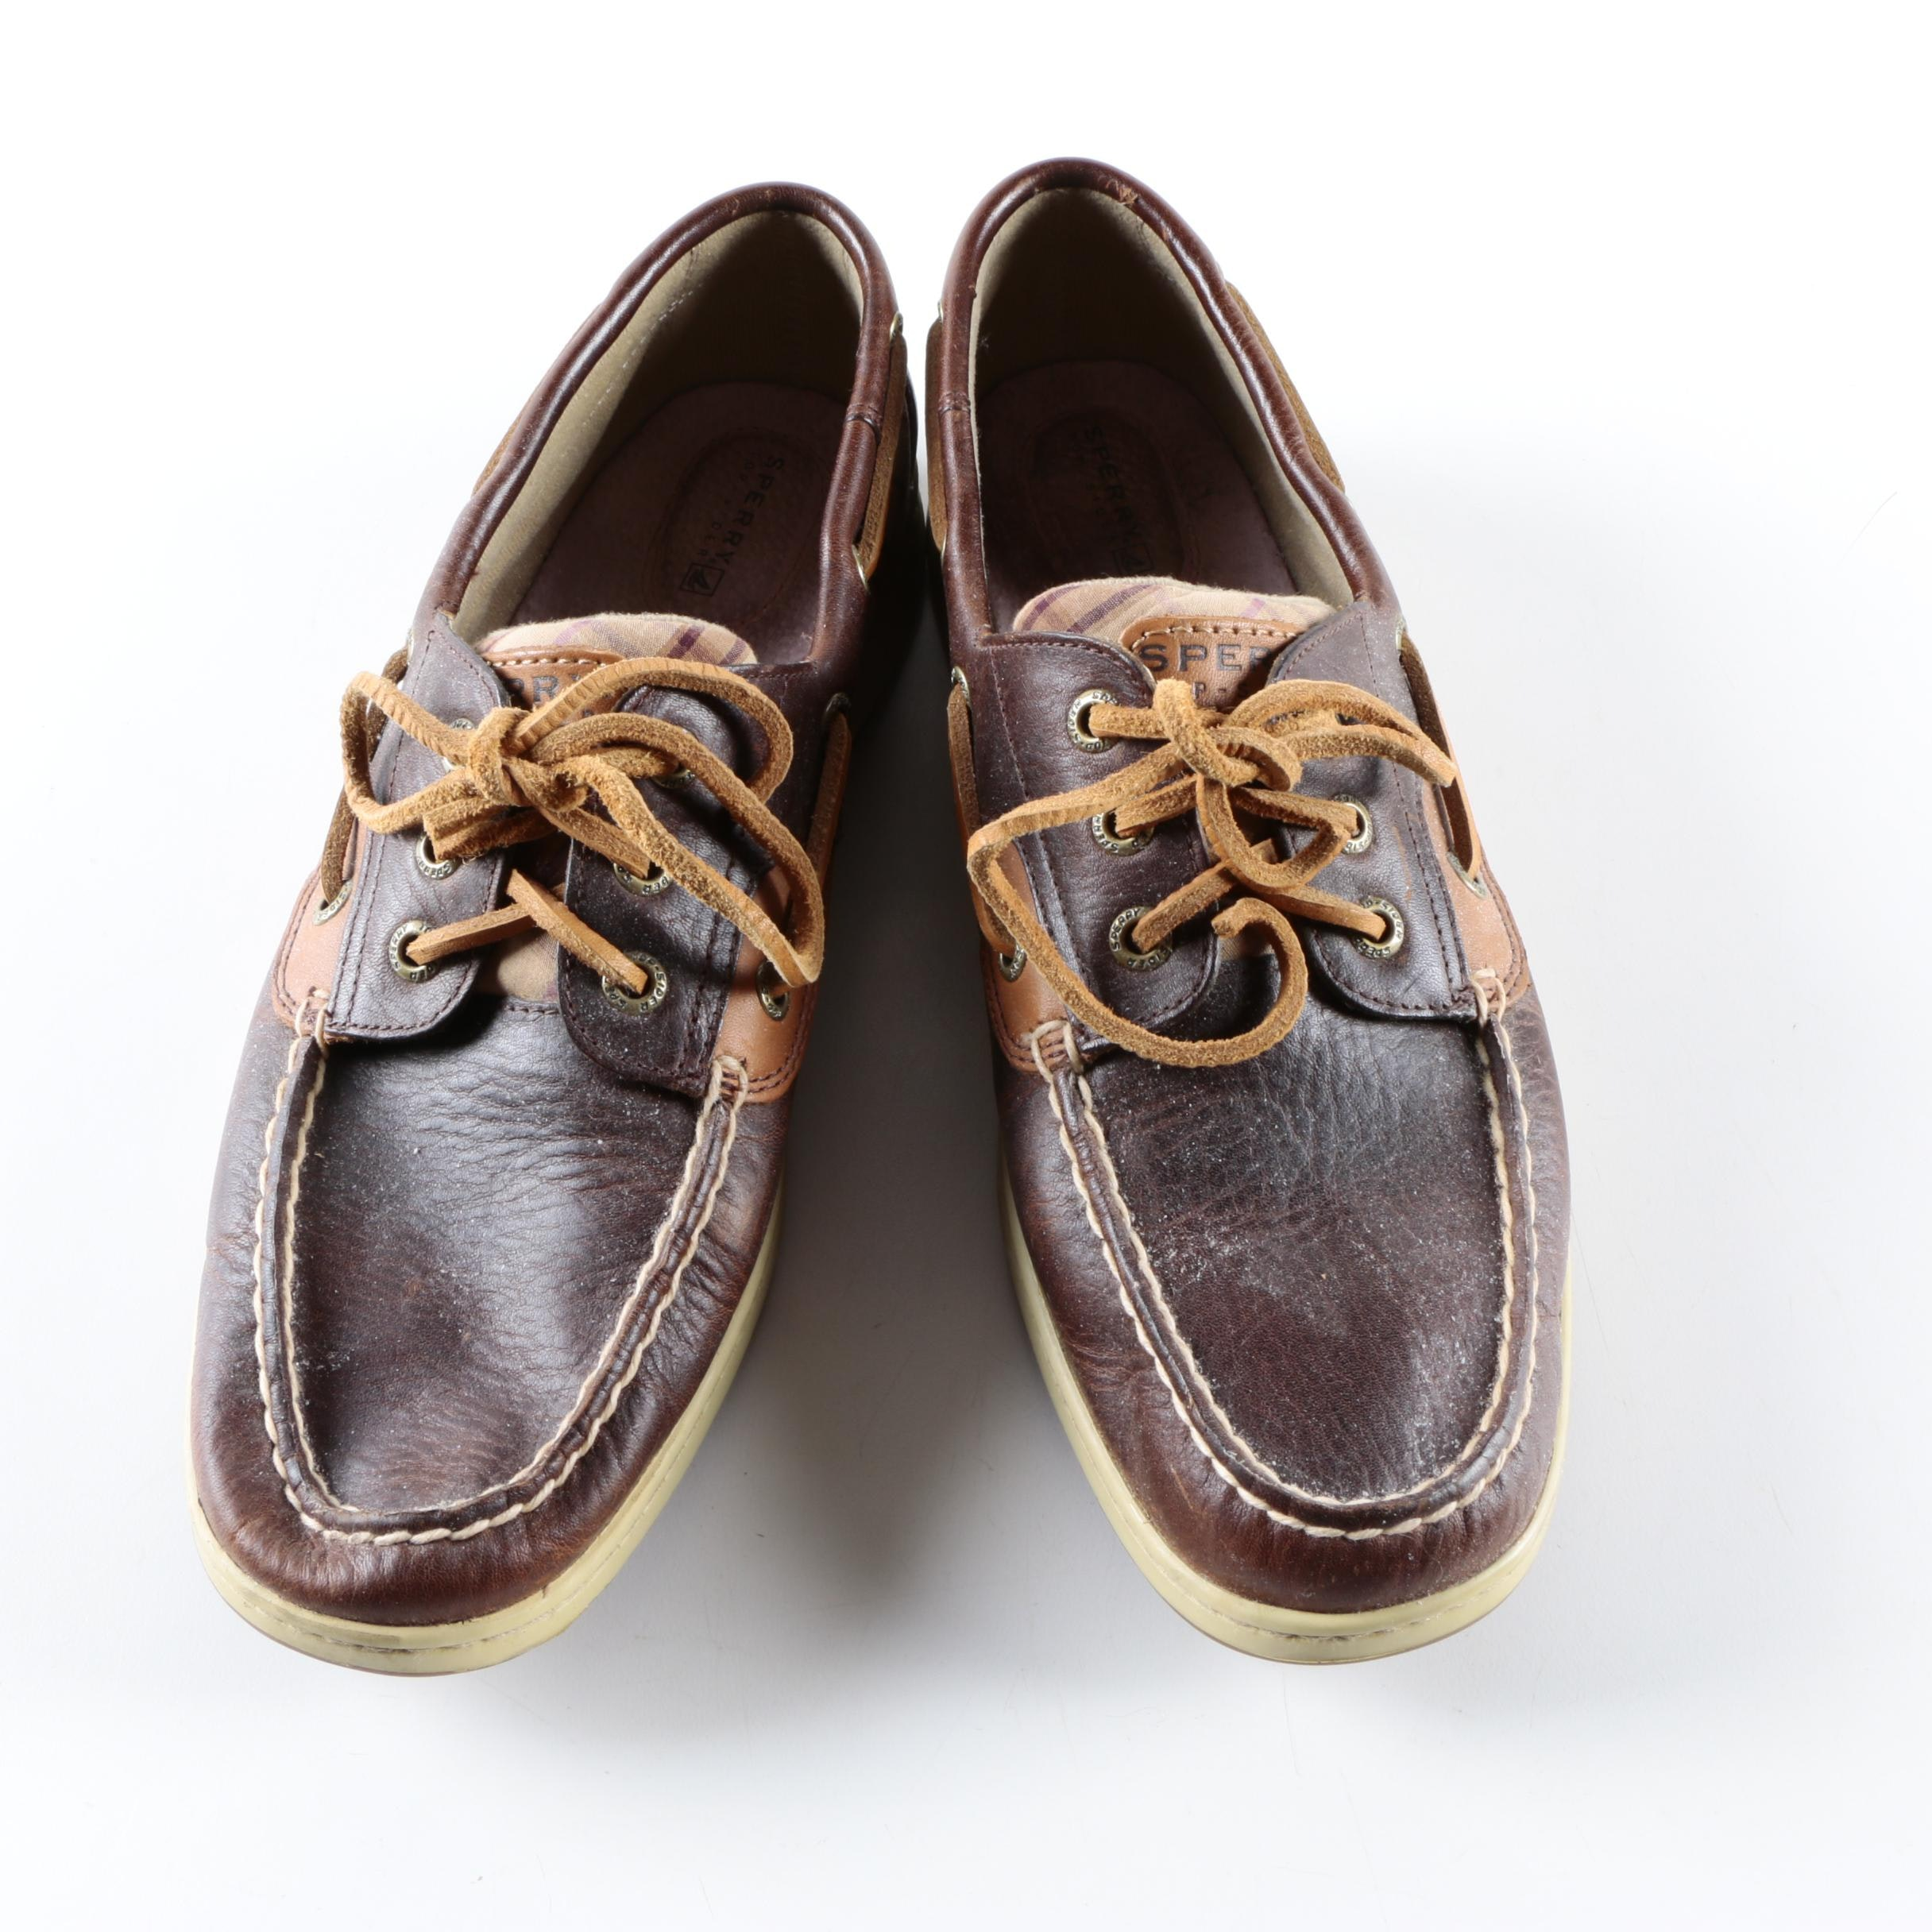 Women's Sperry Leather Loafers